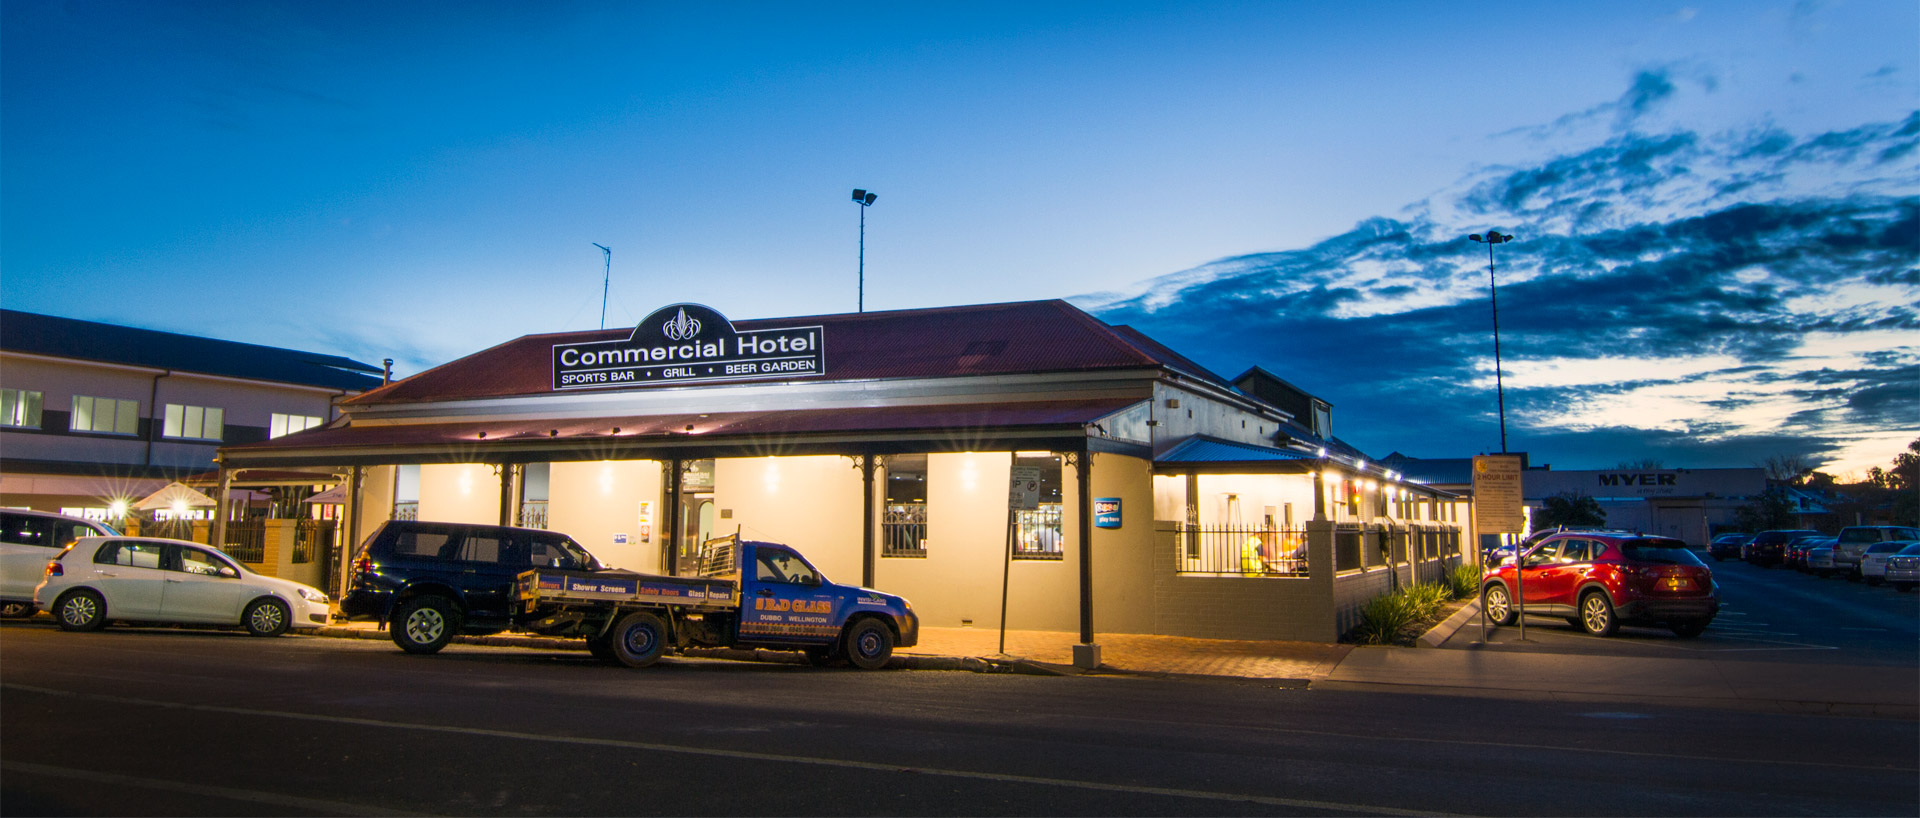 Fabulous The Commercial Hotel- Dubbo Pub With Beer Garden & Large Courtyard with Fresh Garden Hotel Dubbo